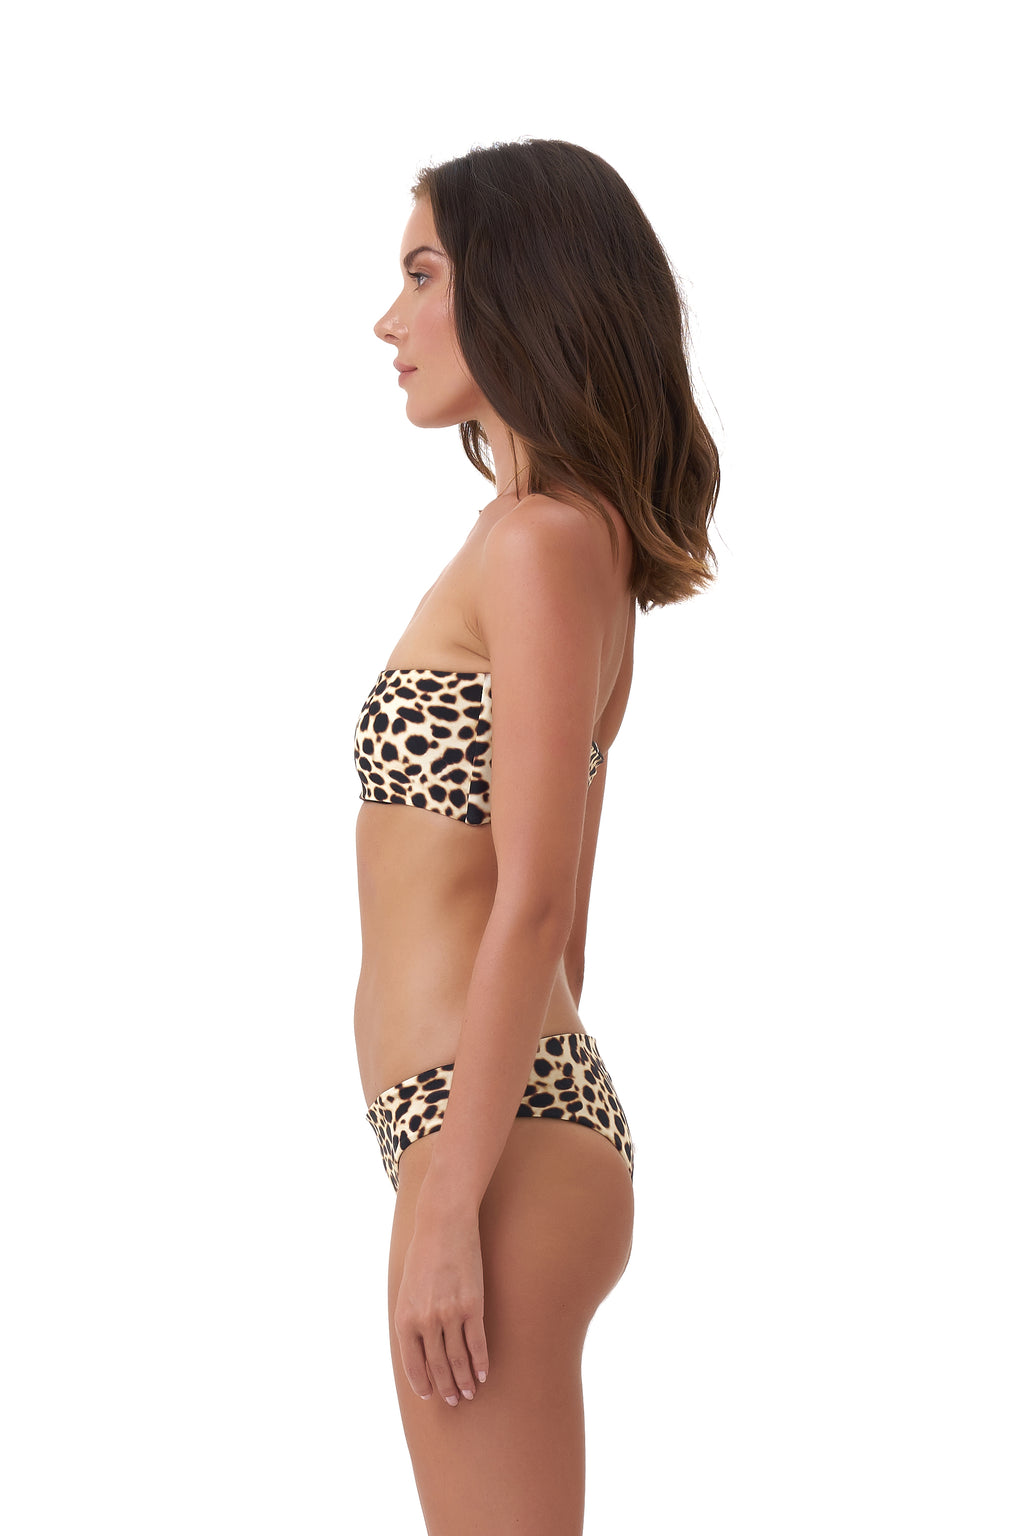 Storm Swimwear - St Barts - Bottom in Cheetah Print